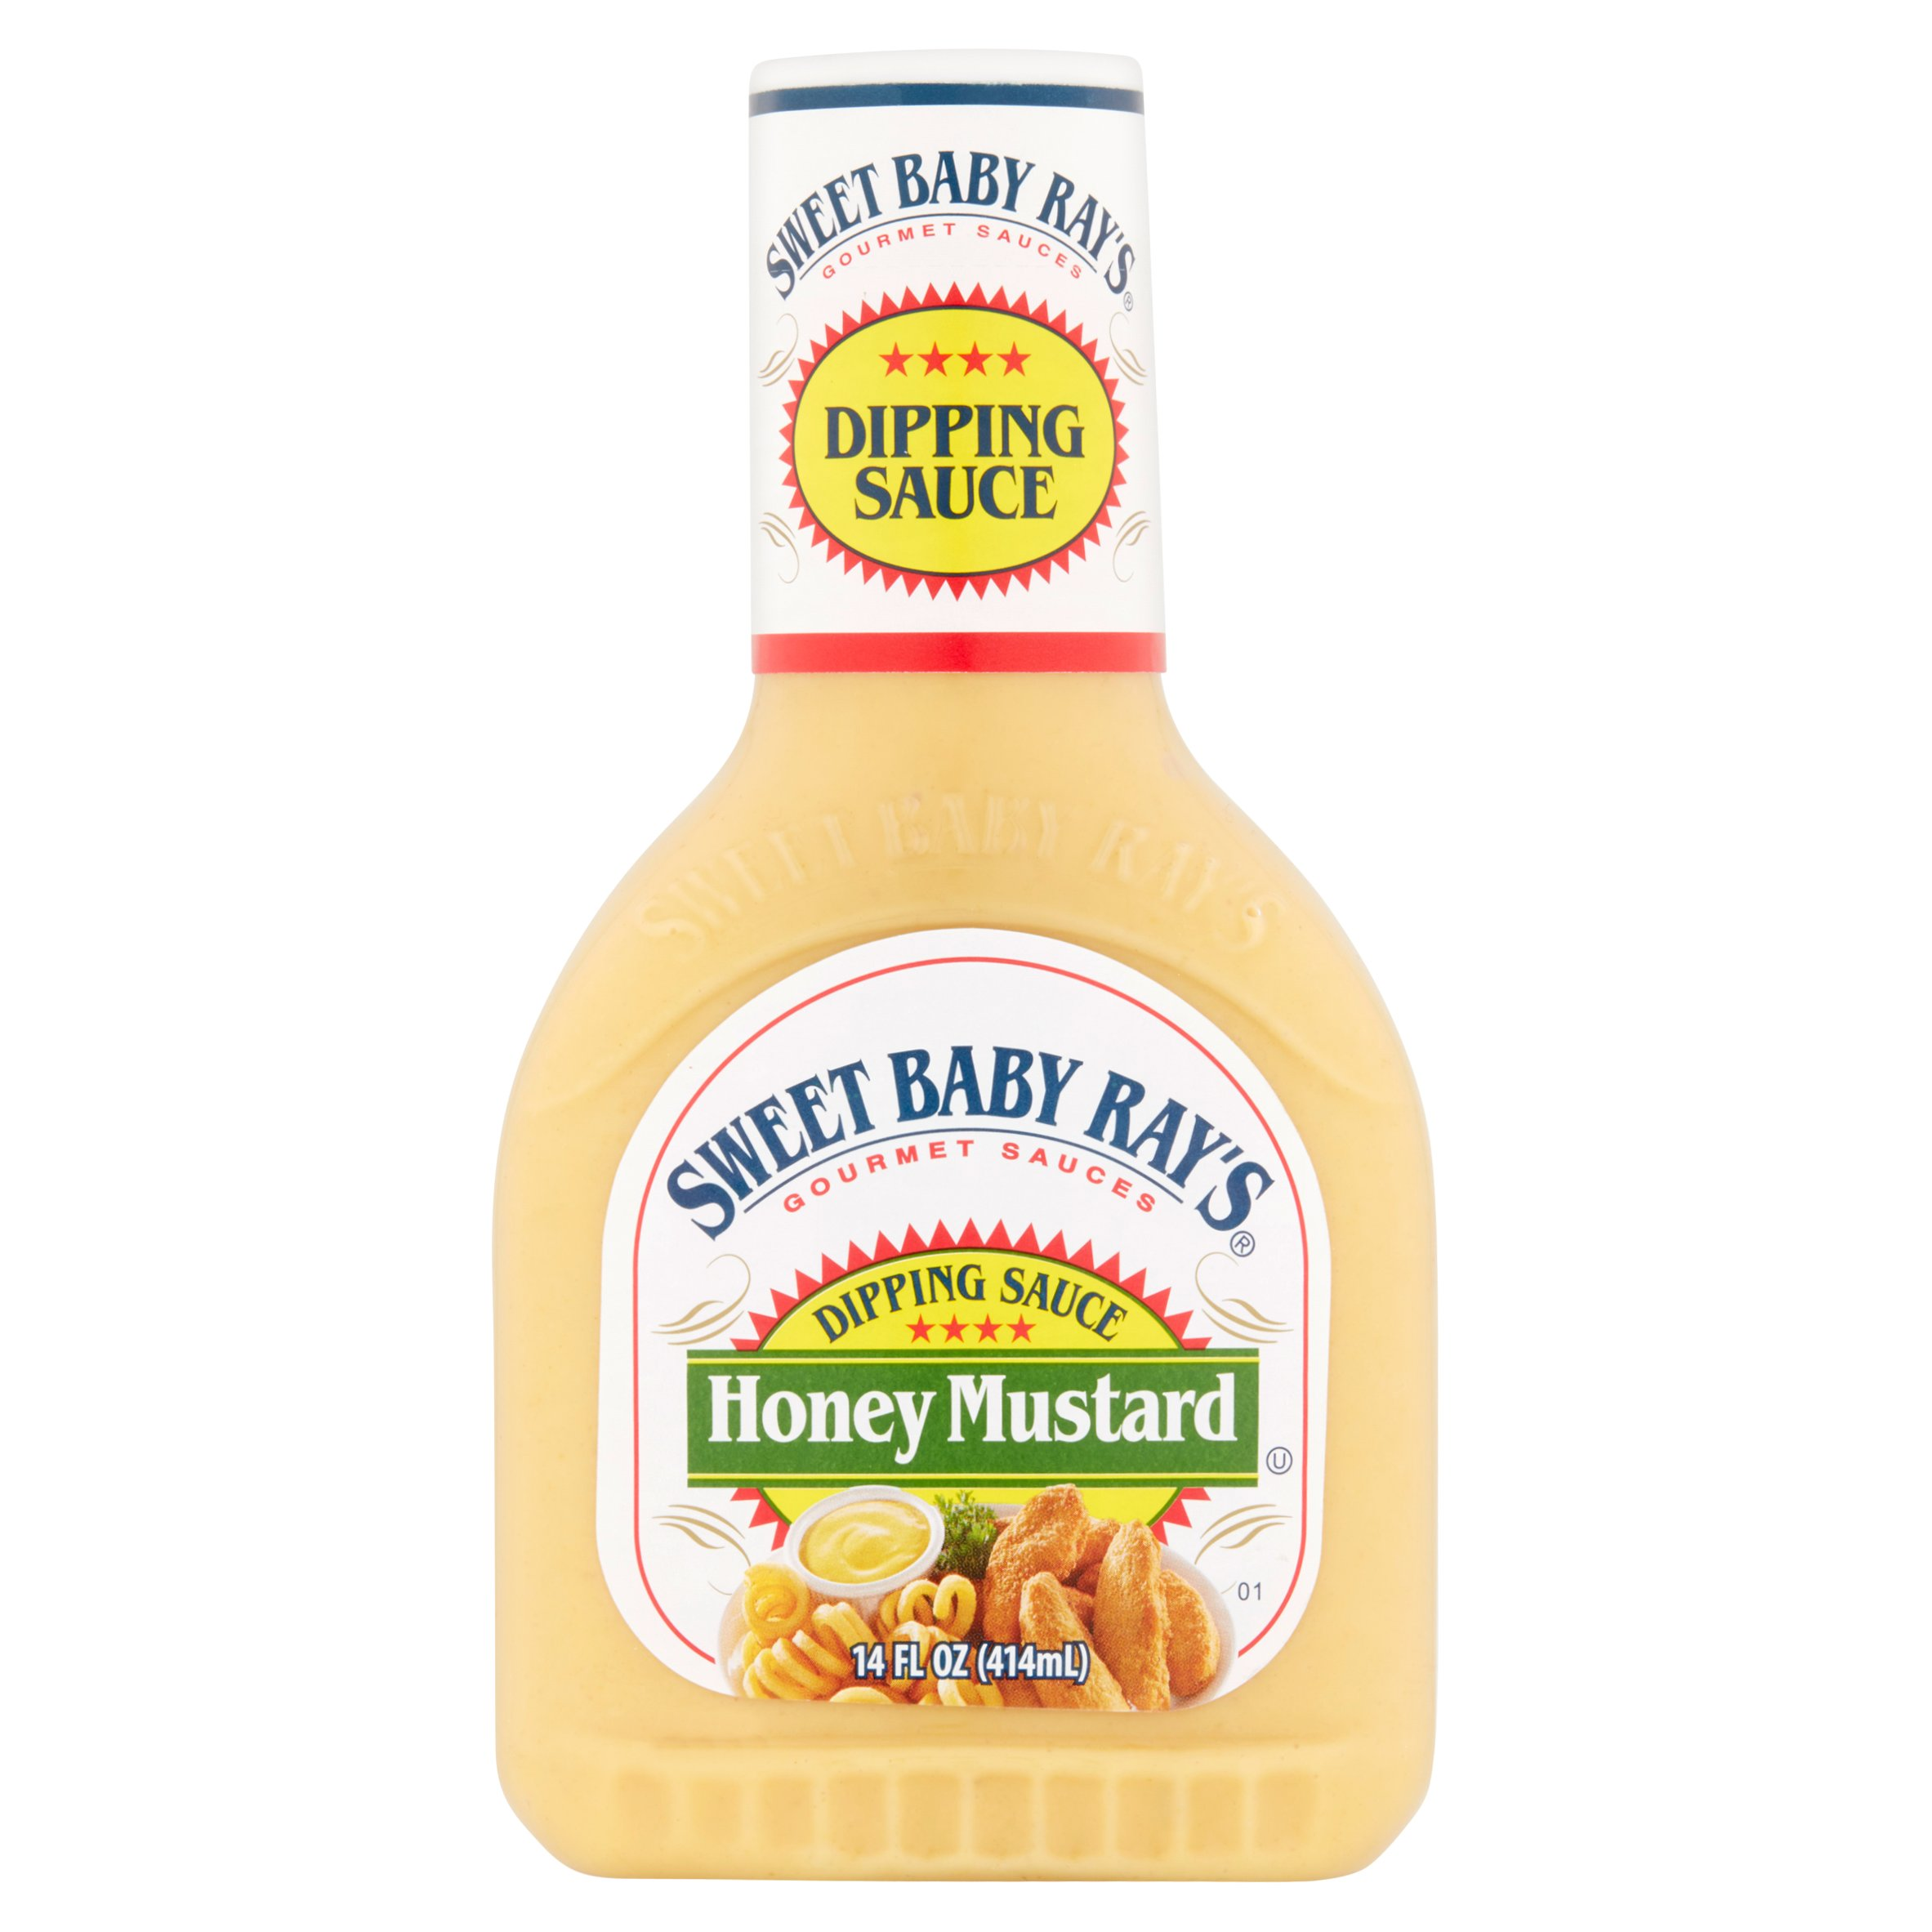 Sweet Baby Ray's Honey Mustard Dipping Sauce, 14 fl oz by Sweet Baby Ray's®